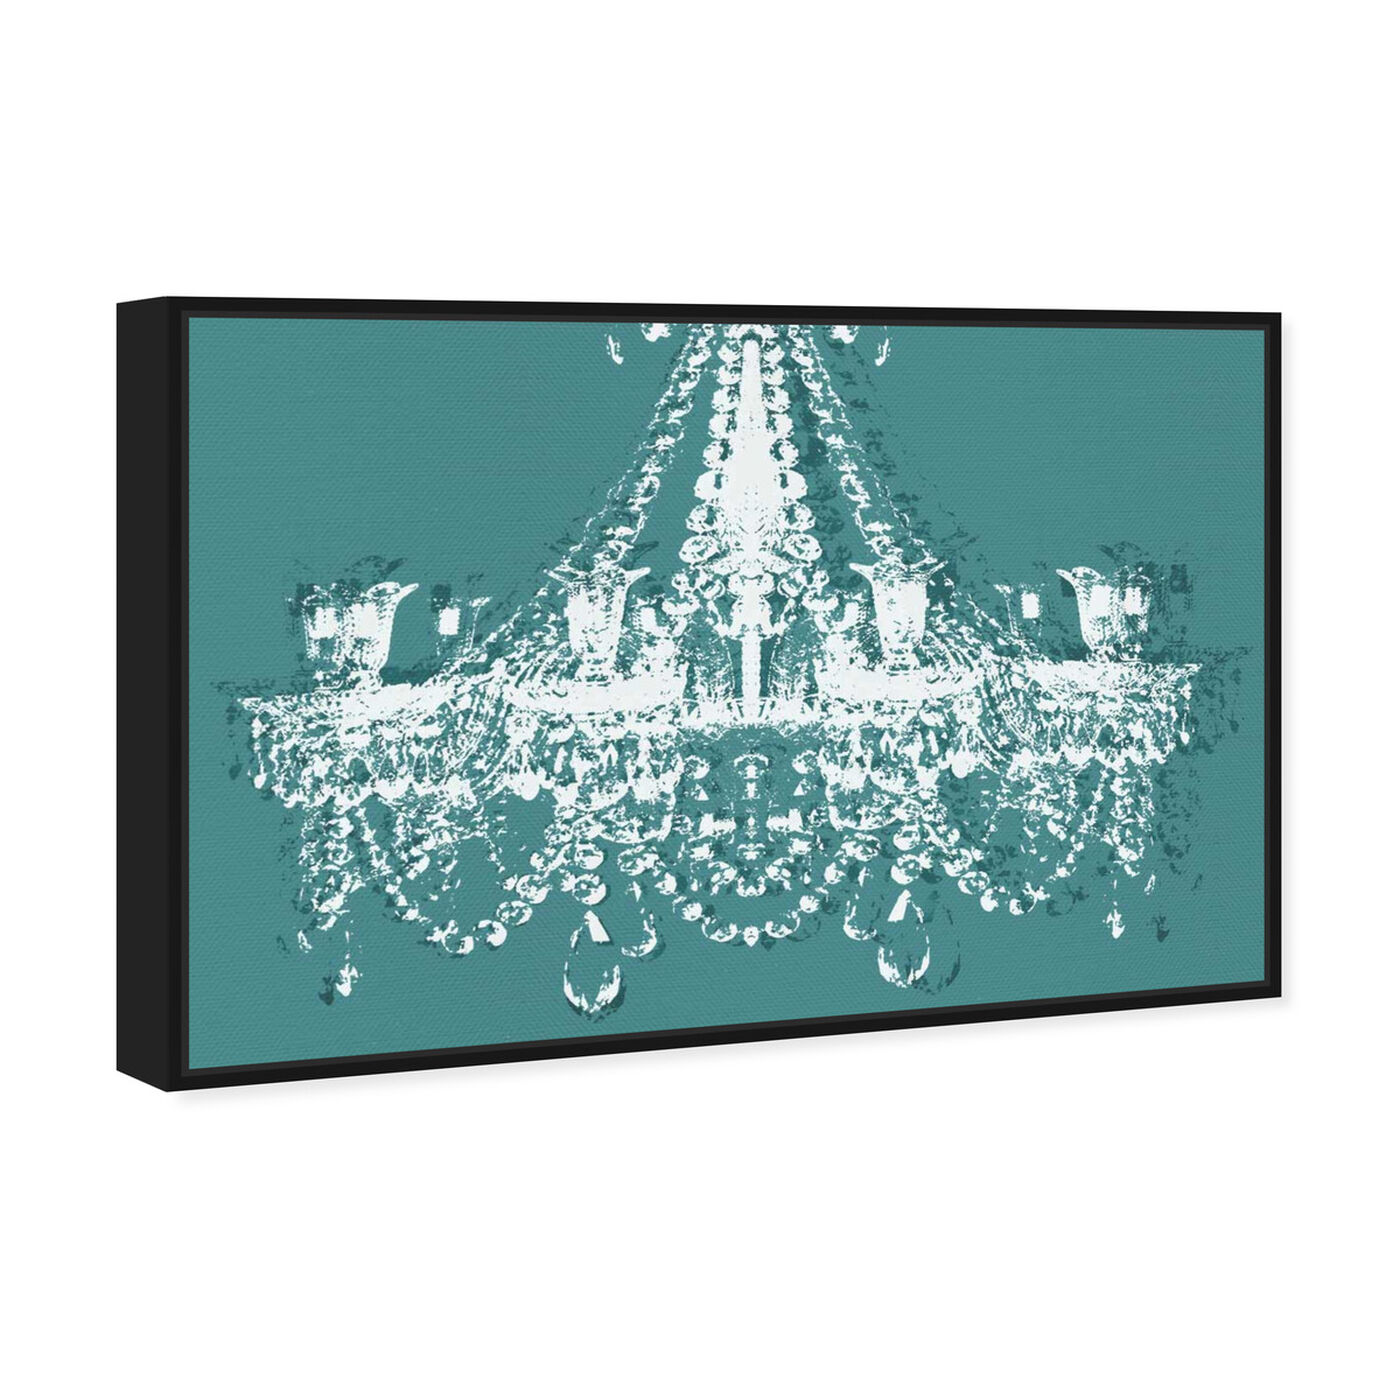 Angled view of Dramatic Entrance Sarcelle featuring fashion and glam and chandeliers art.